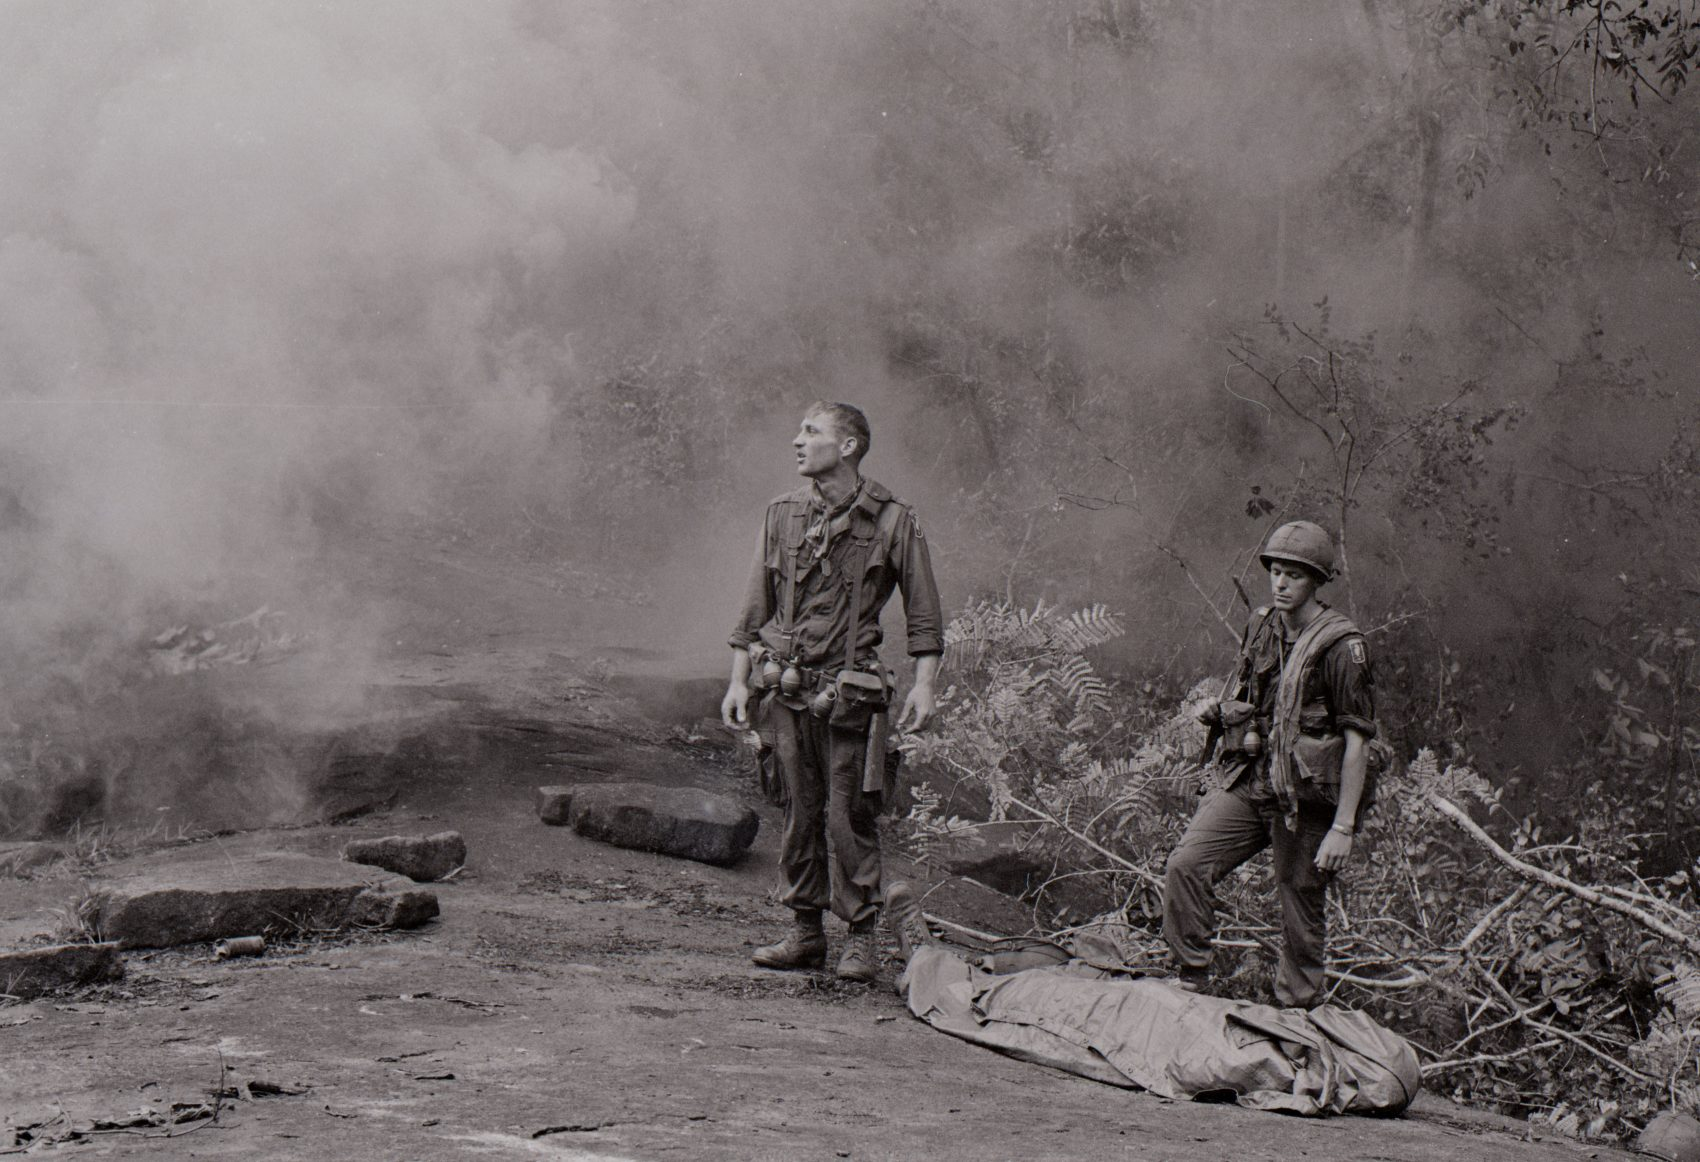 Remembering And Learning From The Vietnam War